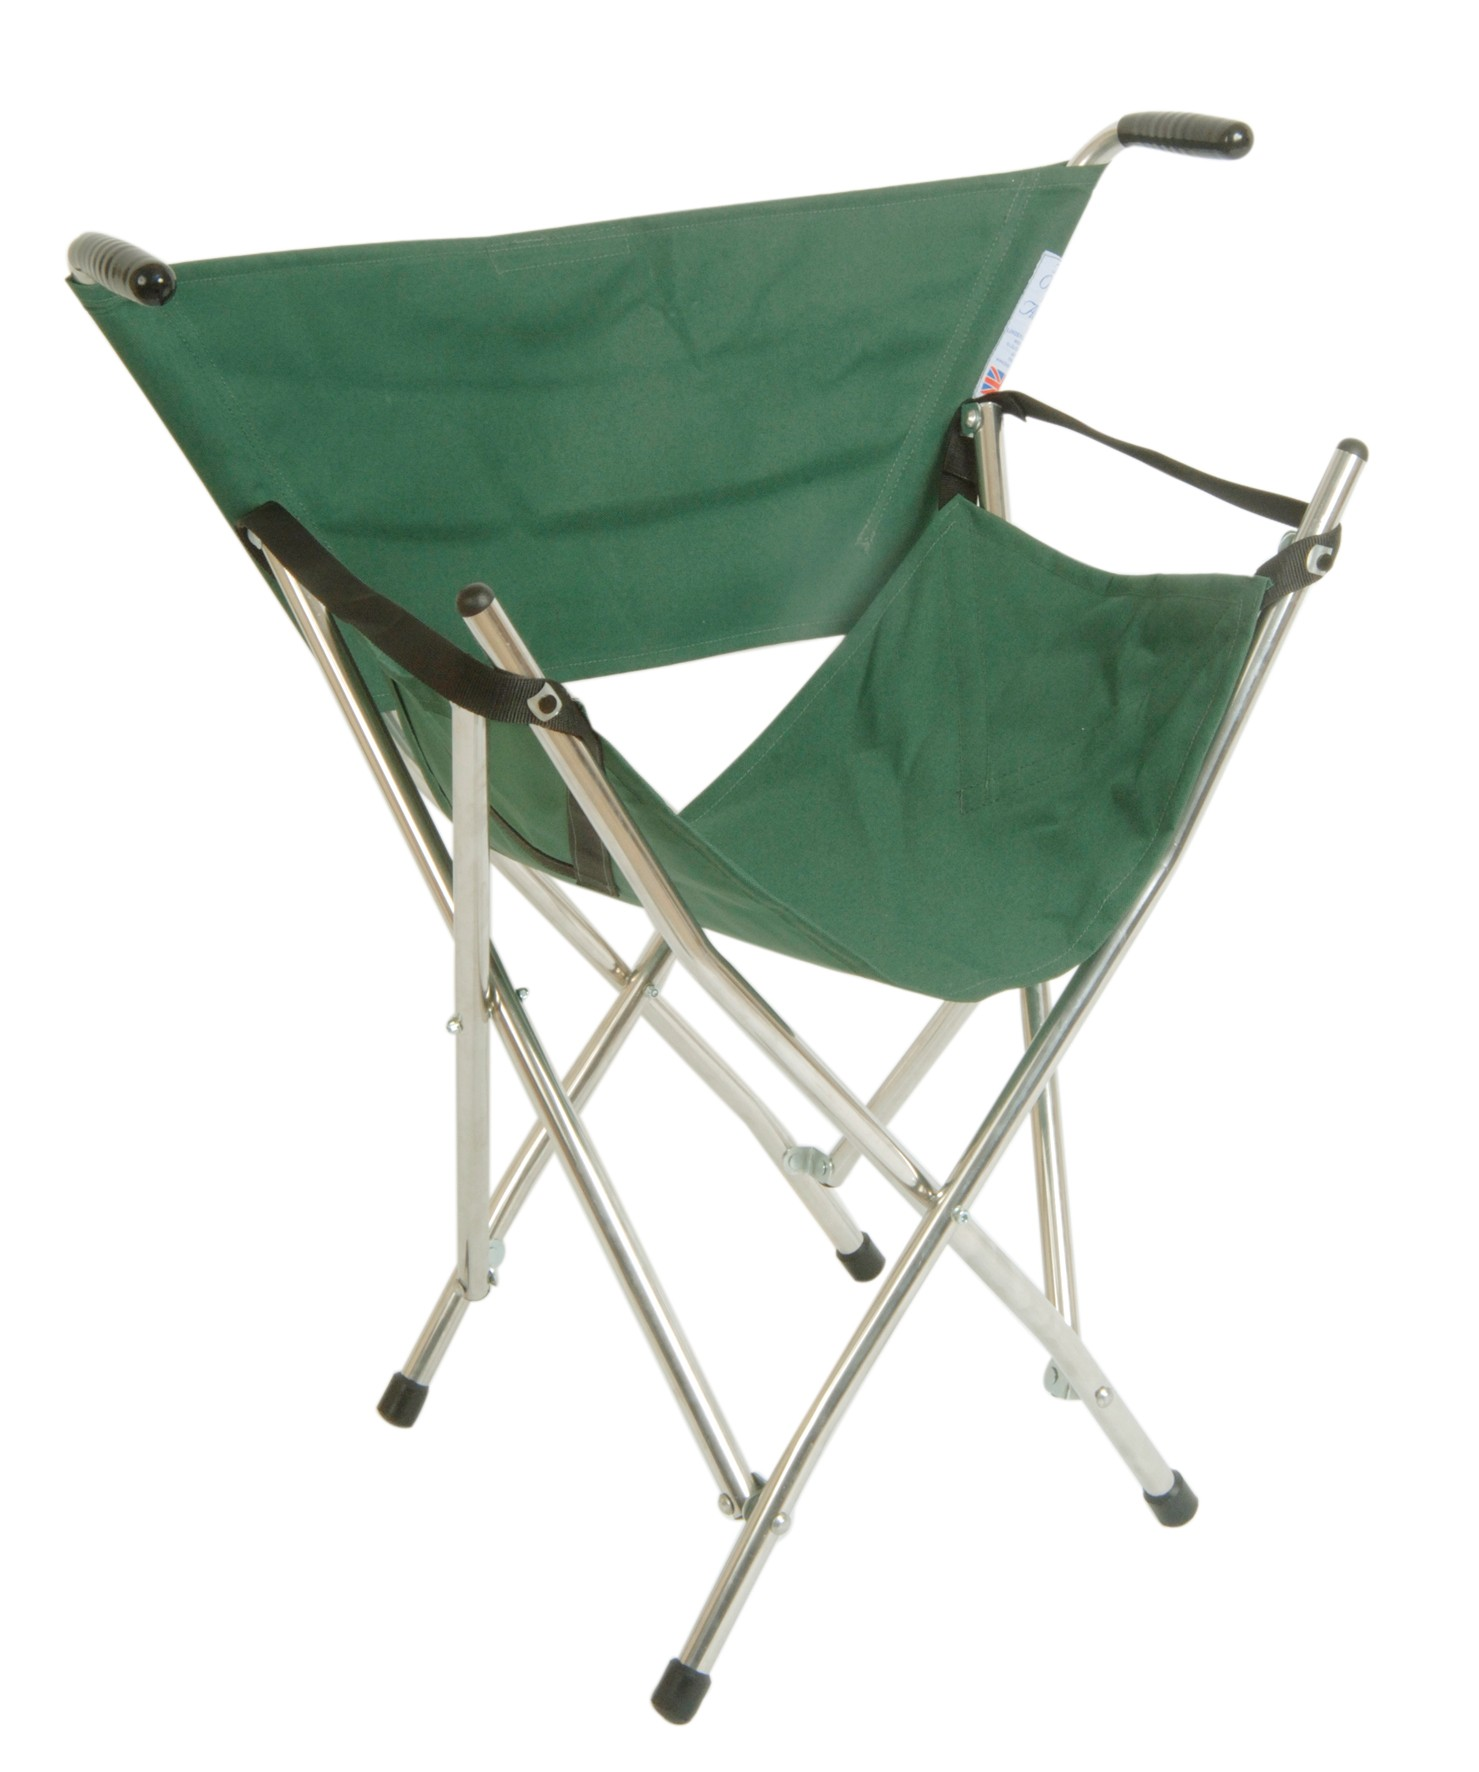 walking cane seat chairs metal bedroom chair classic canes out and about folding green